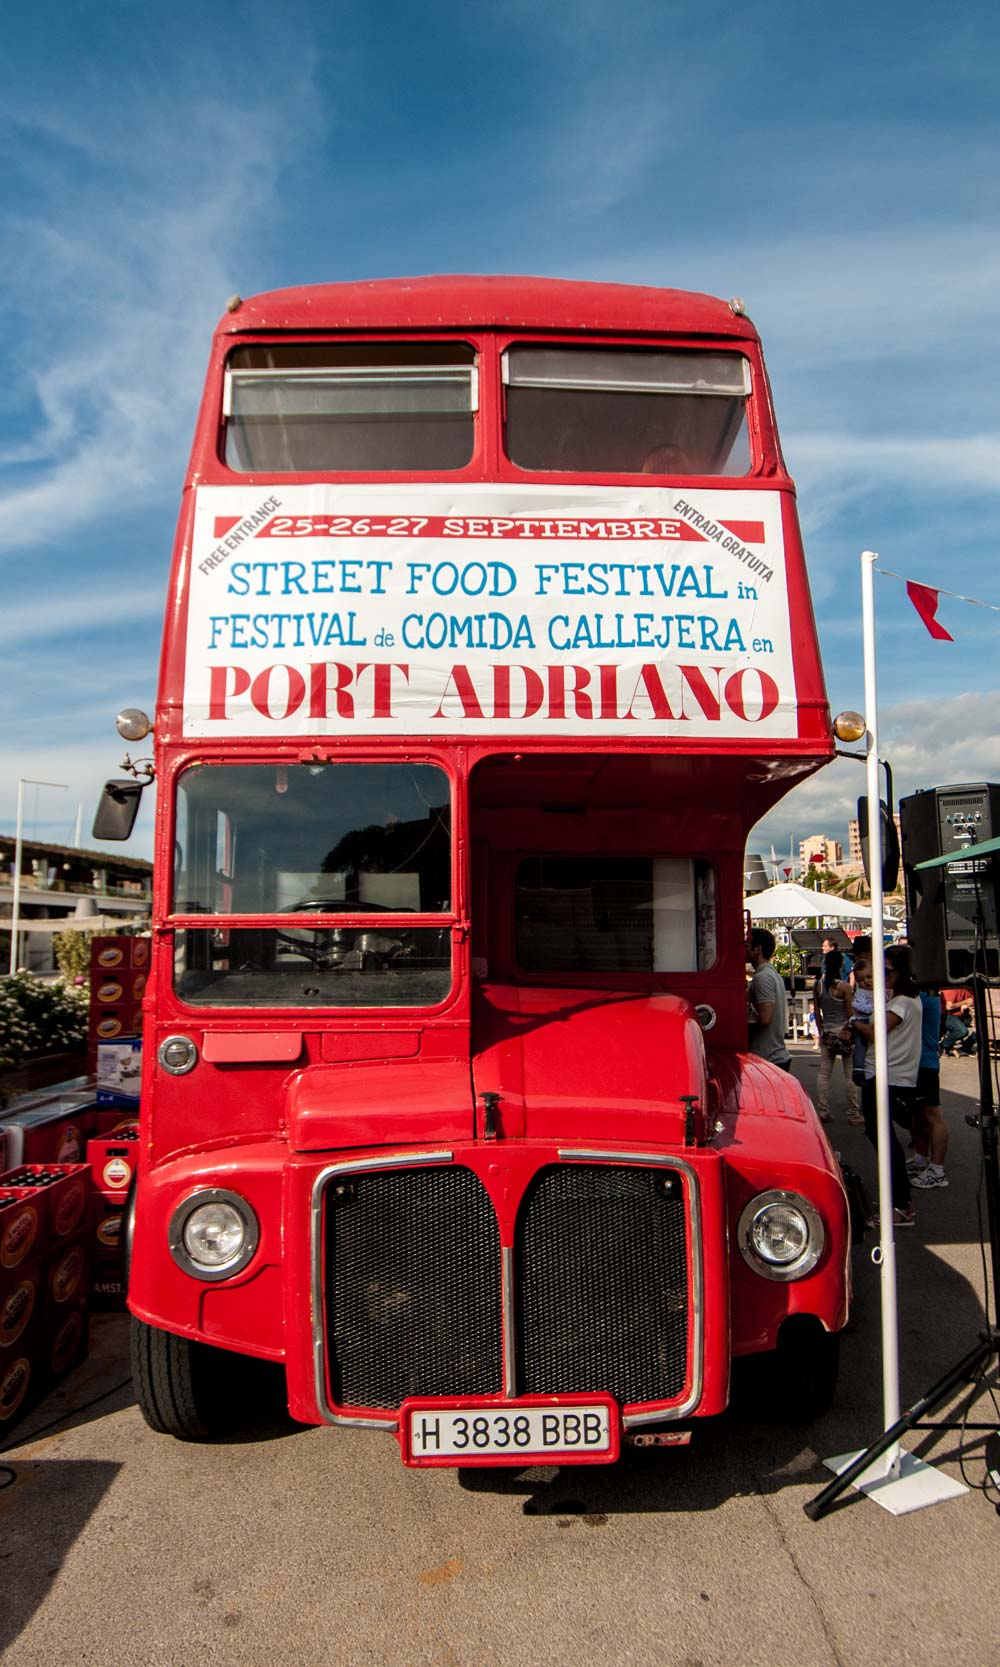 Port Adriano Mallorca street food festival red bus cafe restaurant casafari real estate neighbourhood guides